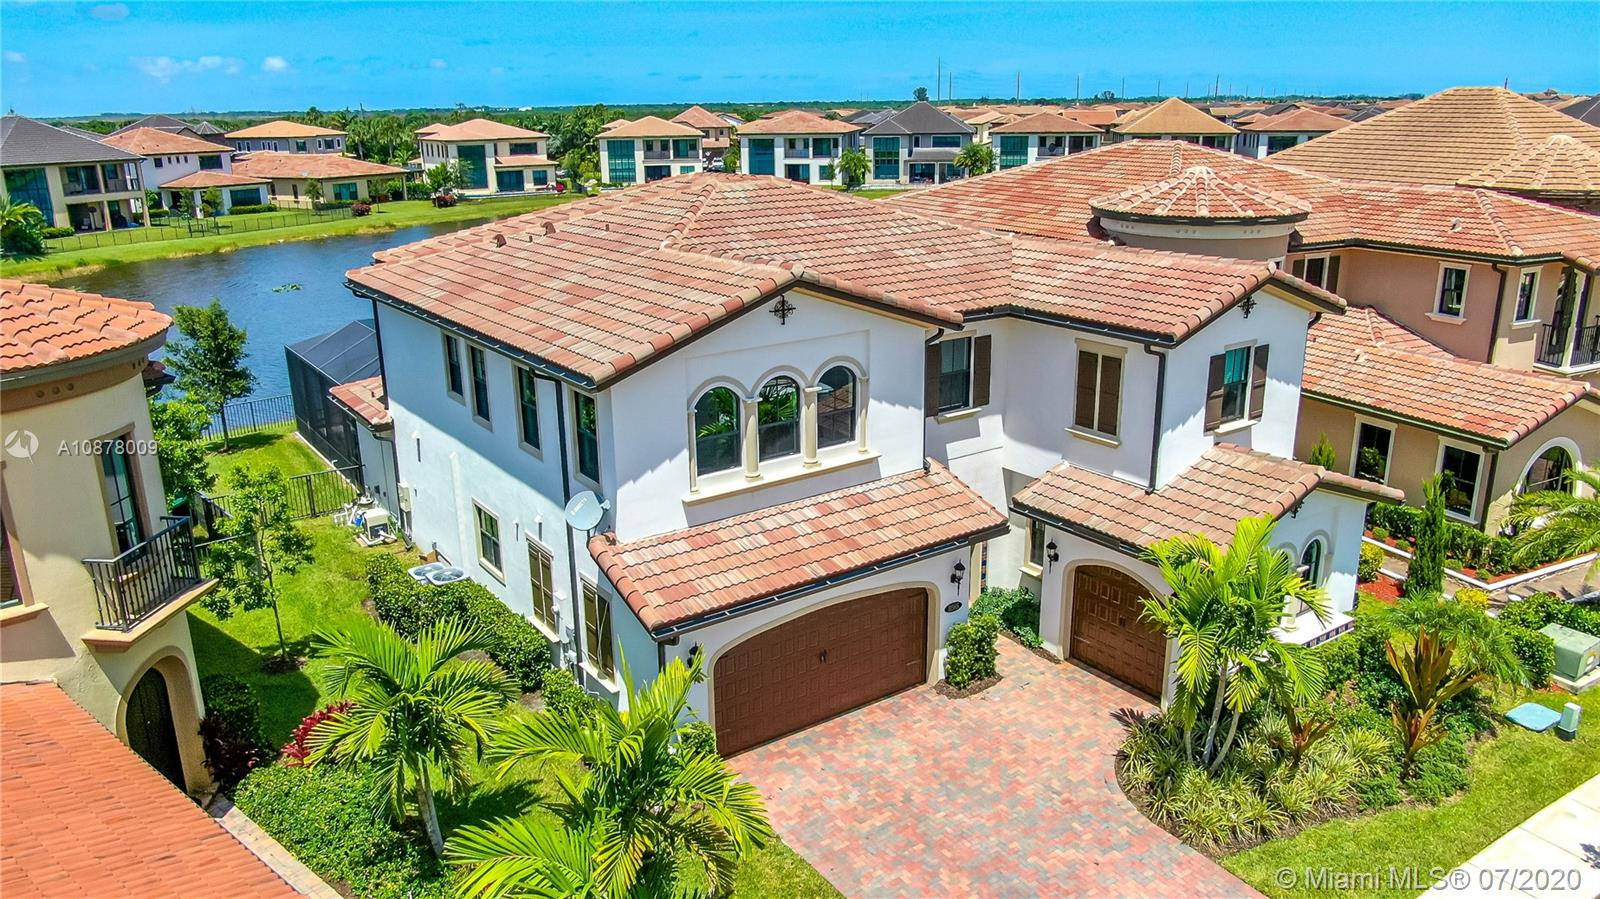 Estate in highly desired WaterCrest Parkland, built in 2017. Soaring 16' ceilings await in entering the living room. Sprawling water views along zero-entry chlorinated saltwater heated pool w/water features, surrounded by sunscreen enclosure. Impact windows & doors, 3CG, 4 BR, 5 BA, large office. Master suite is complete with a screened balcony, 2 walk-in closets, and a luxurious jetted bathtub. Walk-in shower the size of a hallway, a must-see!! Custom closets and walk-in pantry. Elegant wood staircase extends to a huge loft. Expensive gourmet kitchen, high-end appliances, cabinet lighting & massive center island. Home boasts intercom, alarm system, cameras, surround sound indoors and on patio, outdoor kitchen, & tv on the lanai. Porcelain tile and wood flooring, over $300,000 in upgrades.